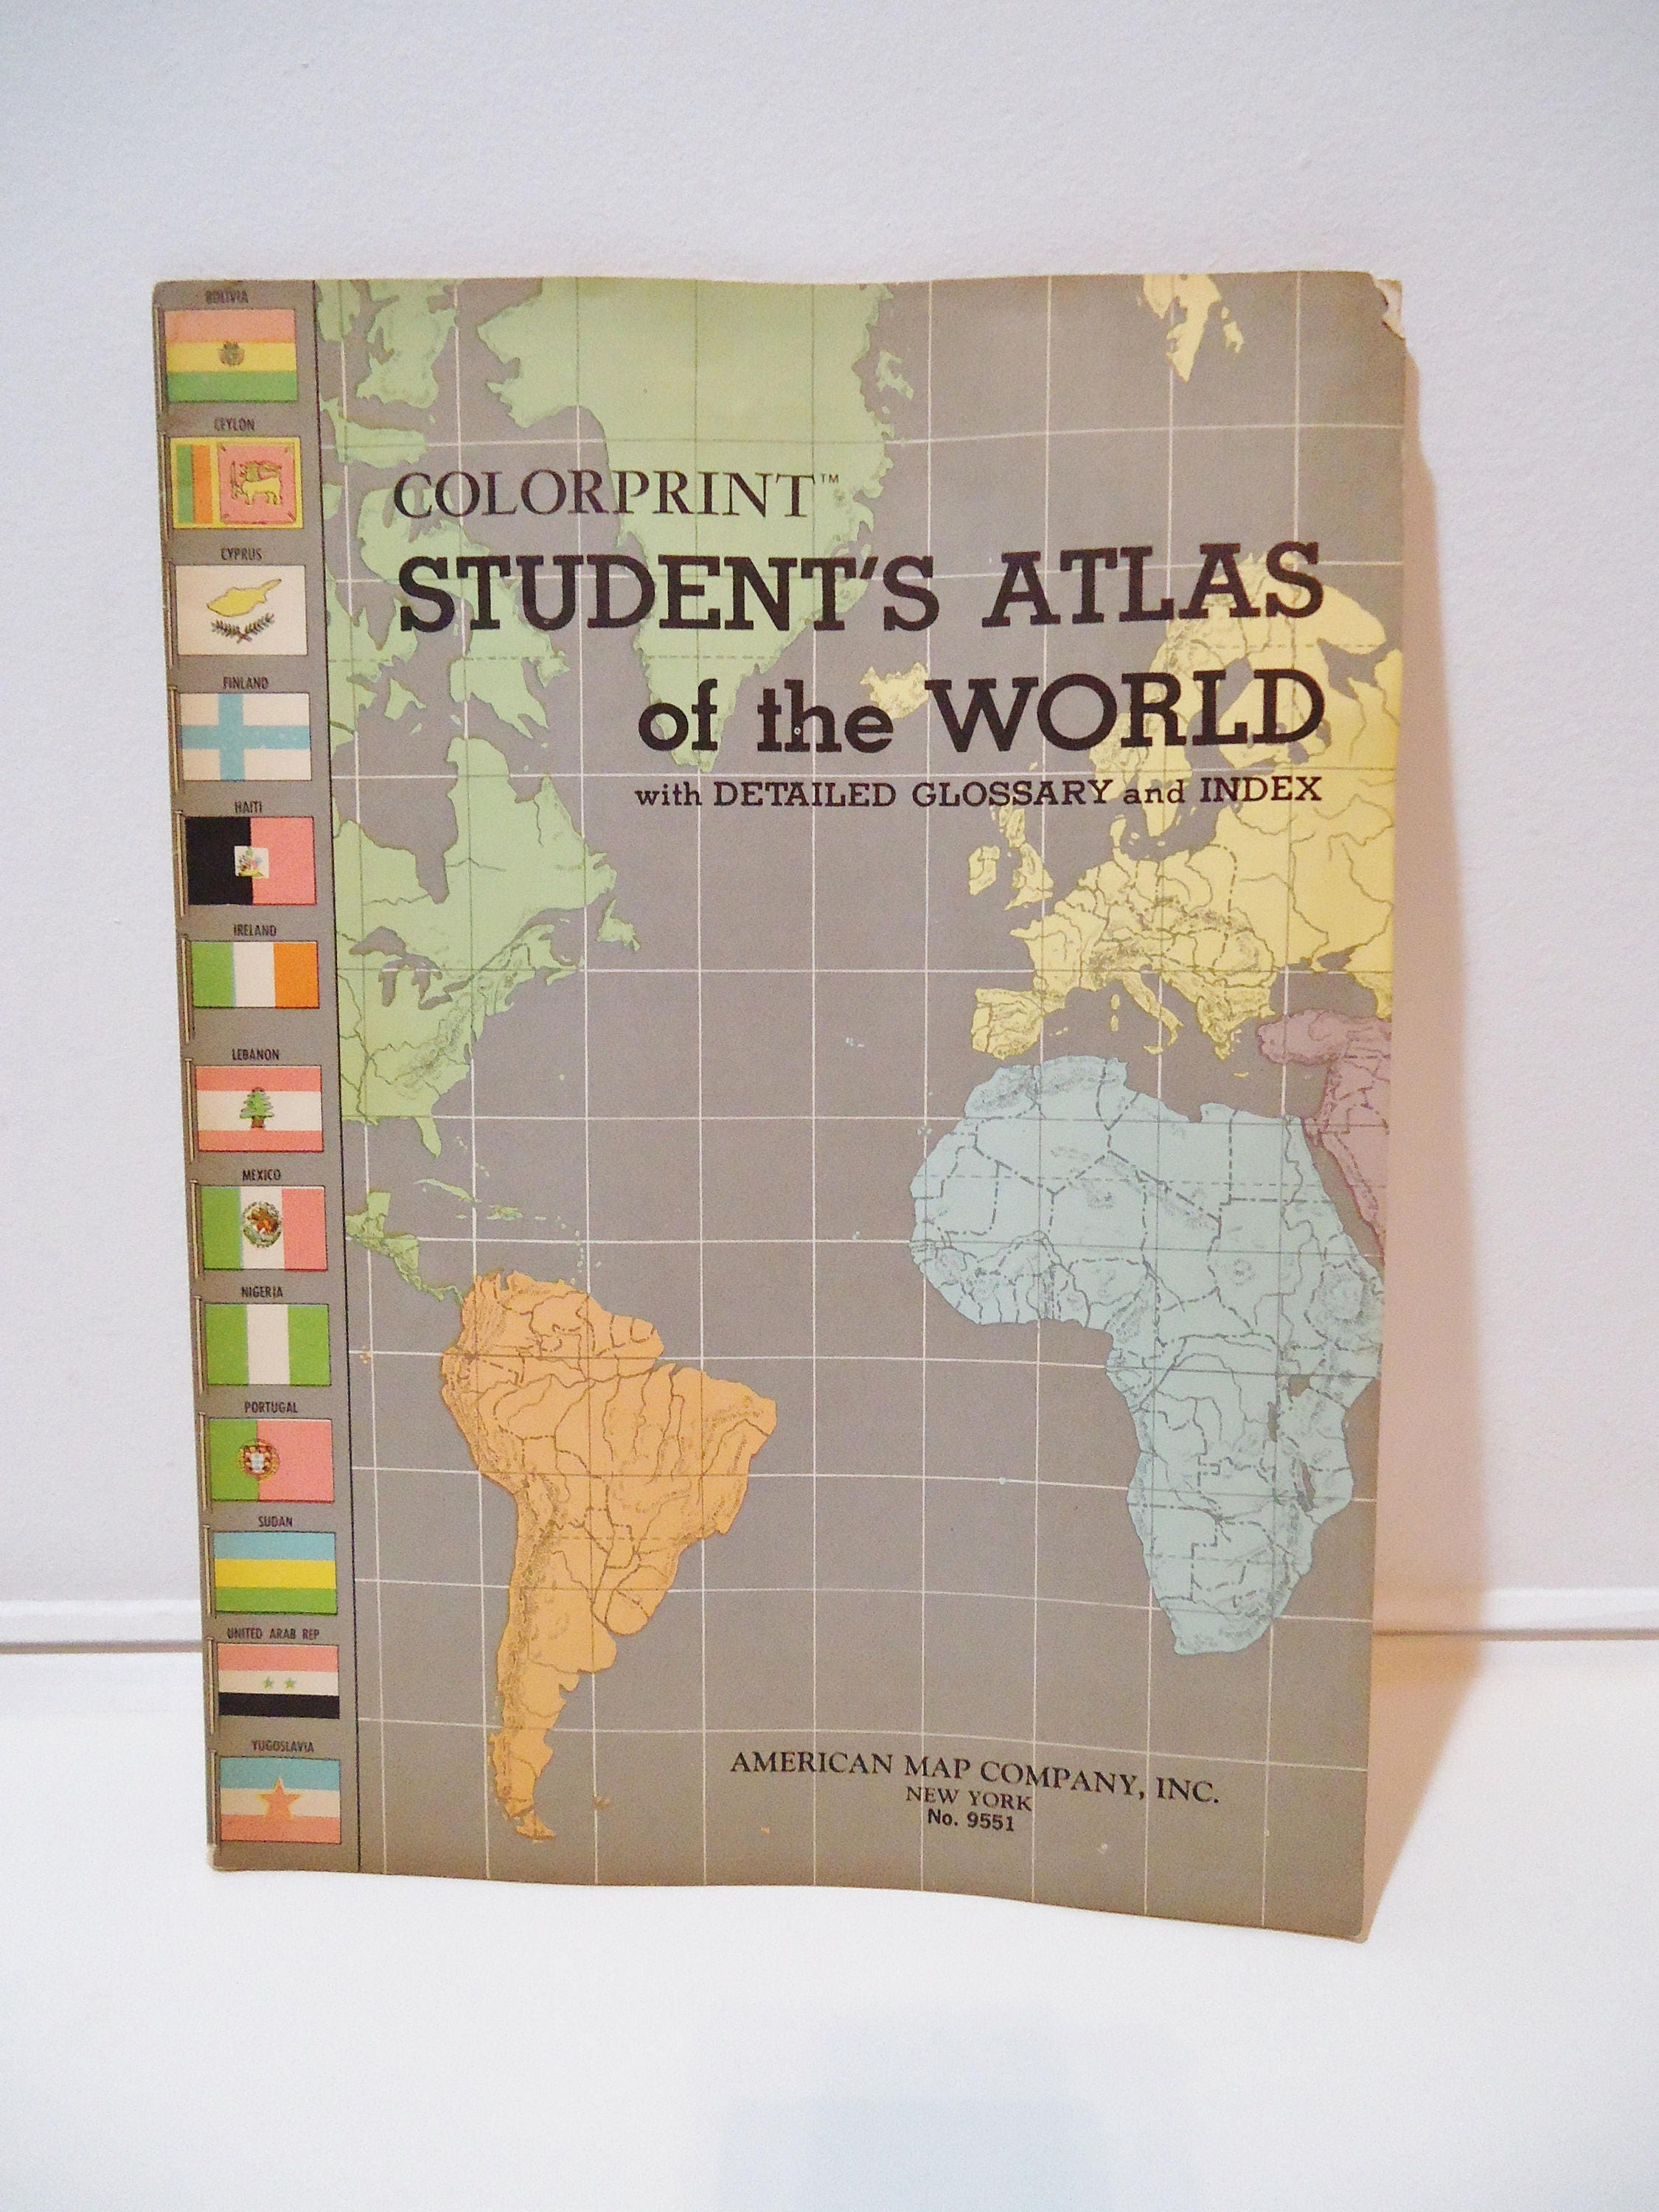 Vintage colorprint student school atlas of the world map book retro vintage colorprint student school atlas of the world map book retro geography ephemera booklet gumiabroncs Gallery